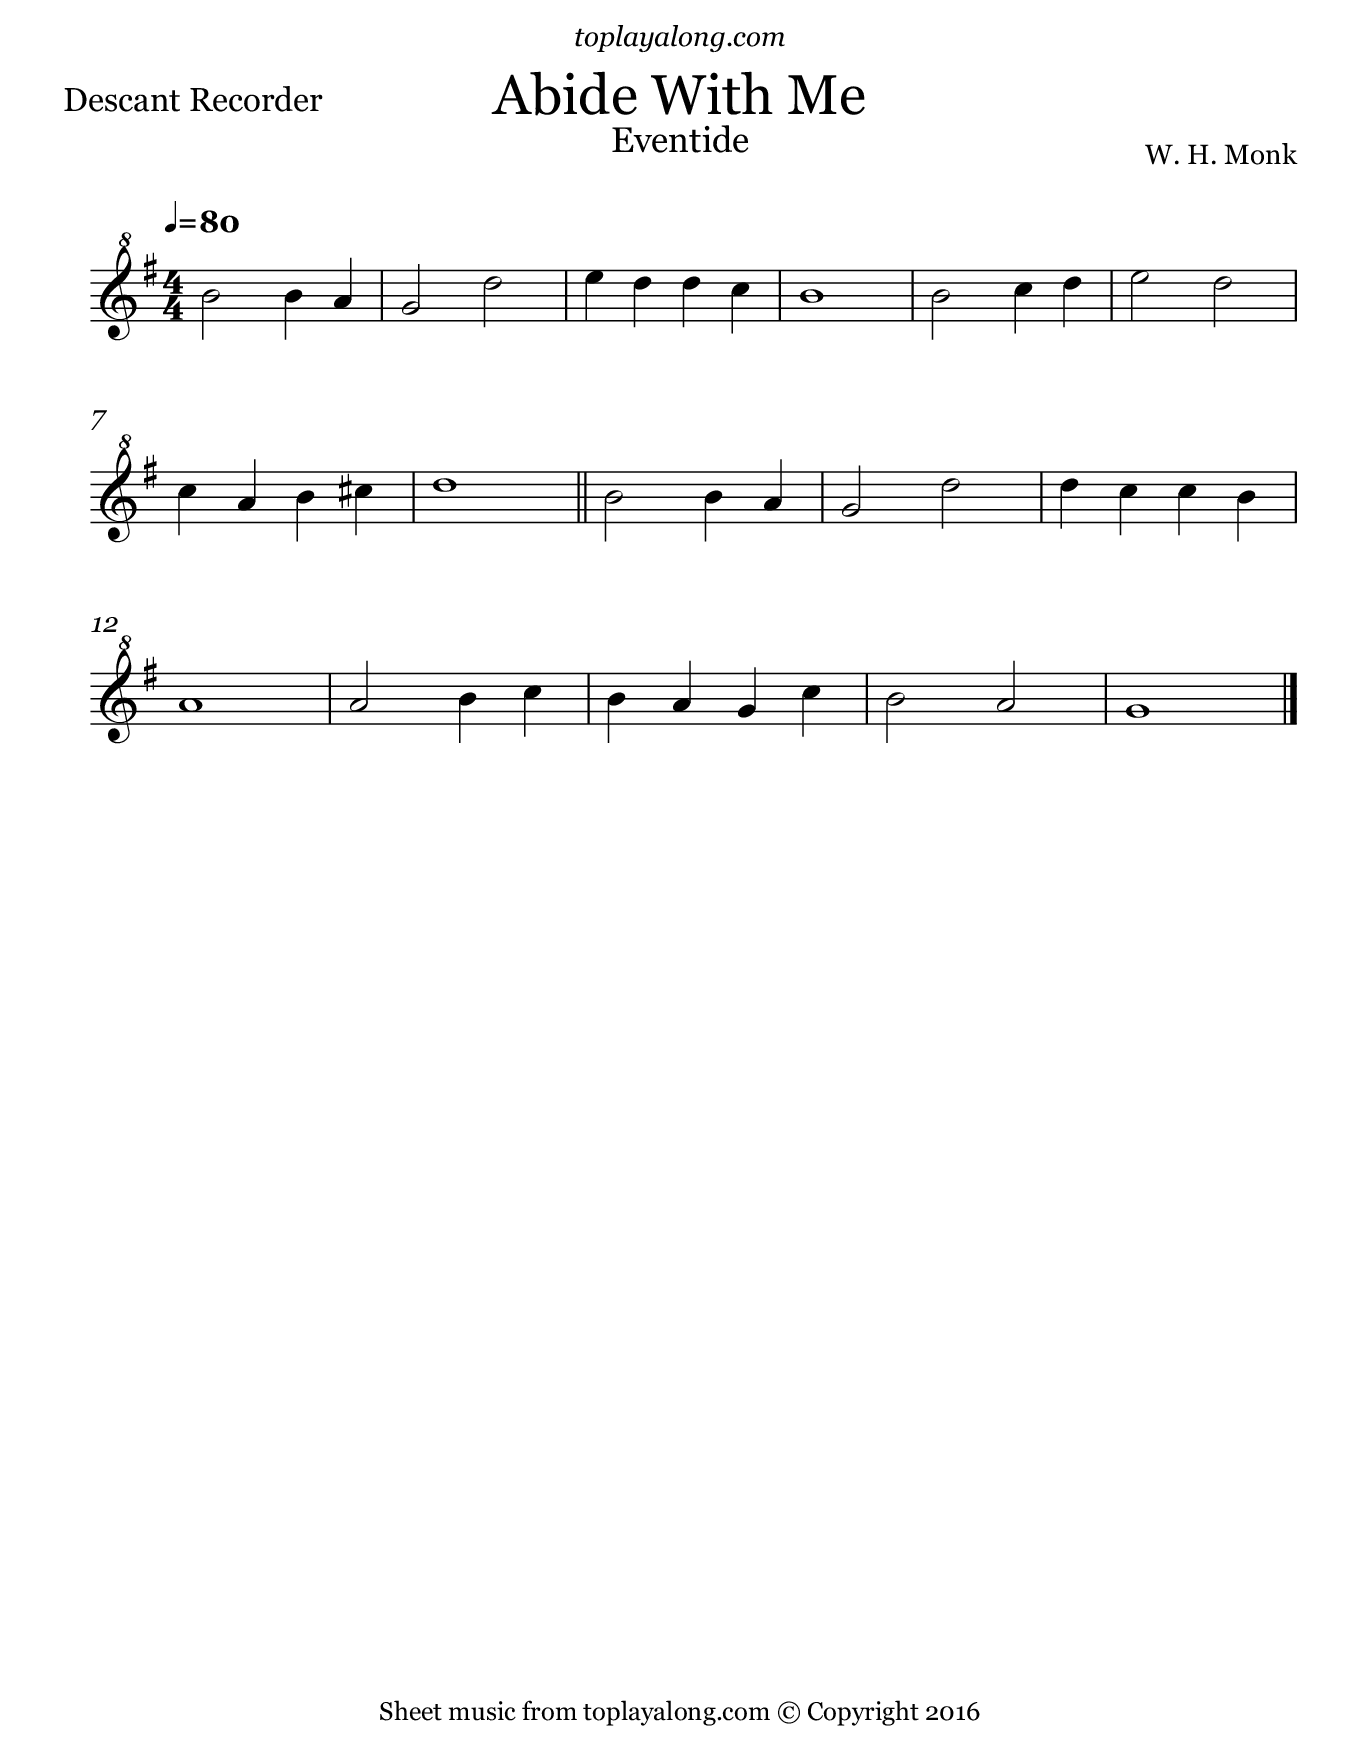 Abide With Me (Eventide). Sheet music for Recorder, page 1.